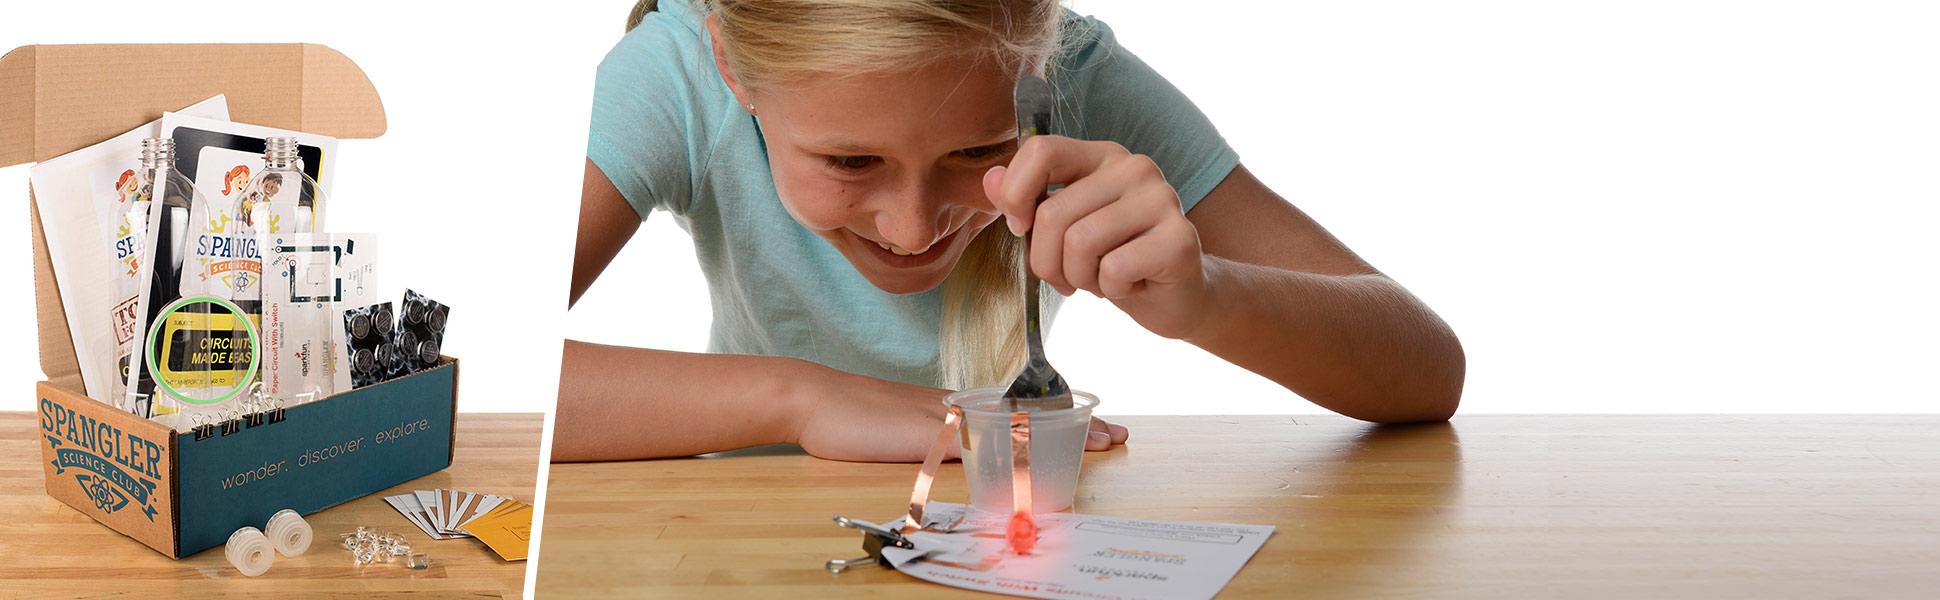 STEM Science Kit – Circuits Made Easy